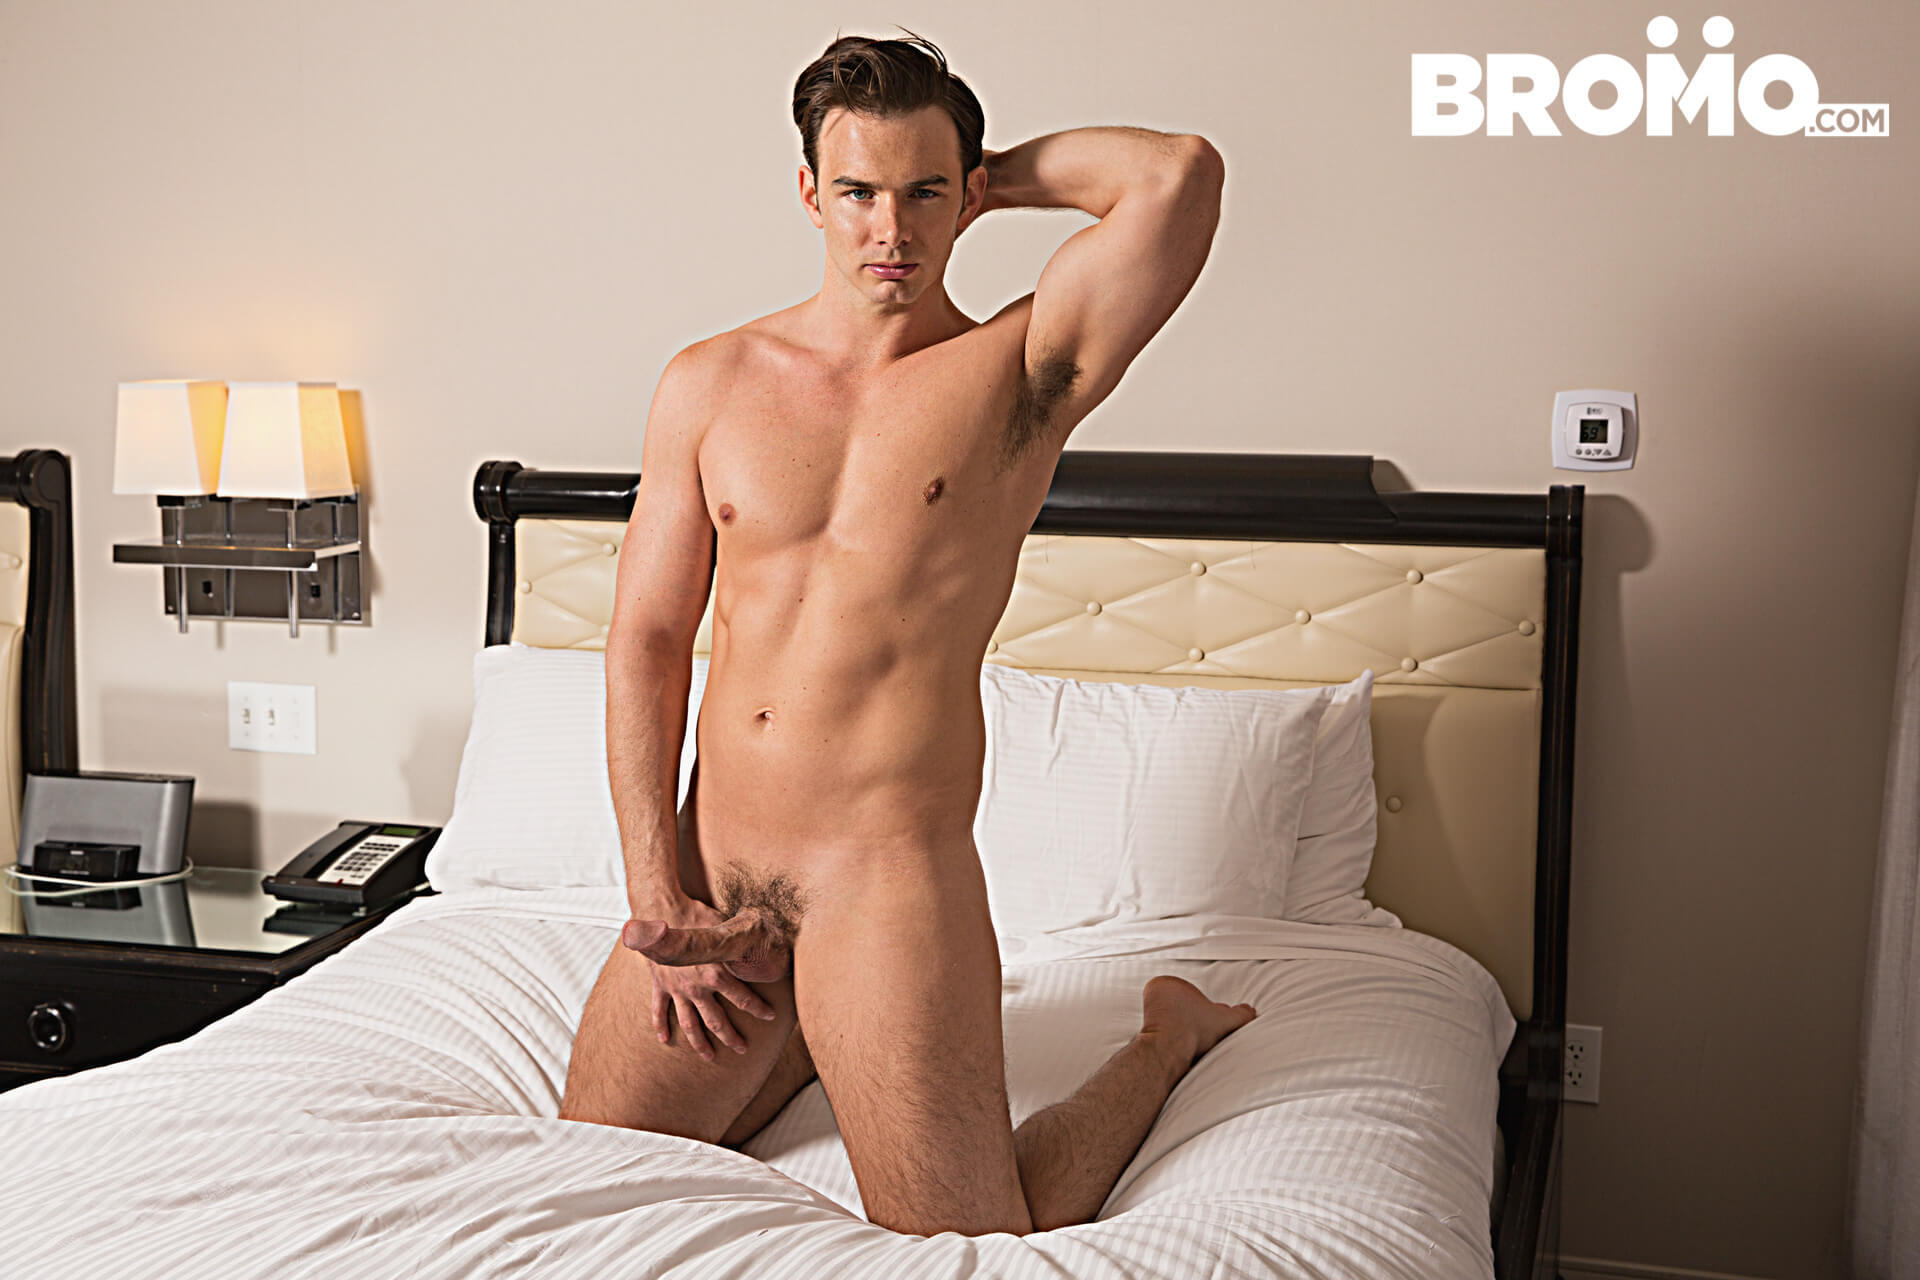 bromo str8 bitch part 3 aspen addison graham gay porn blog image 2